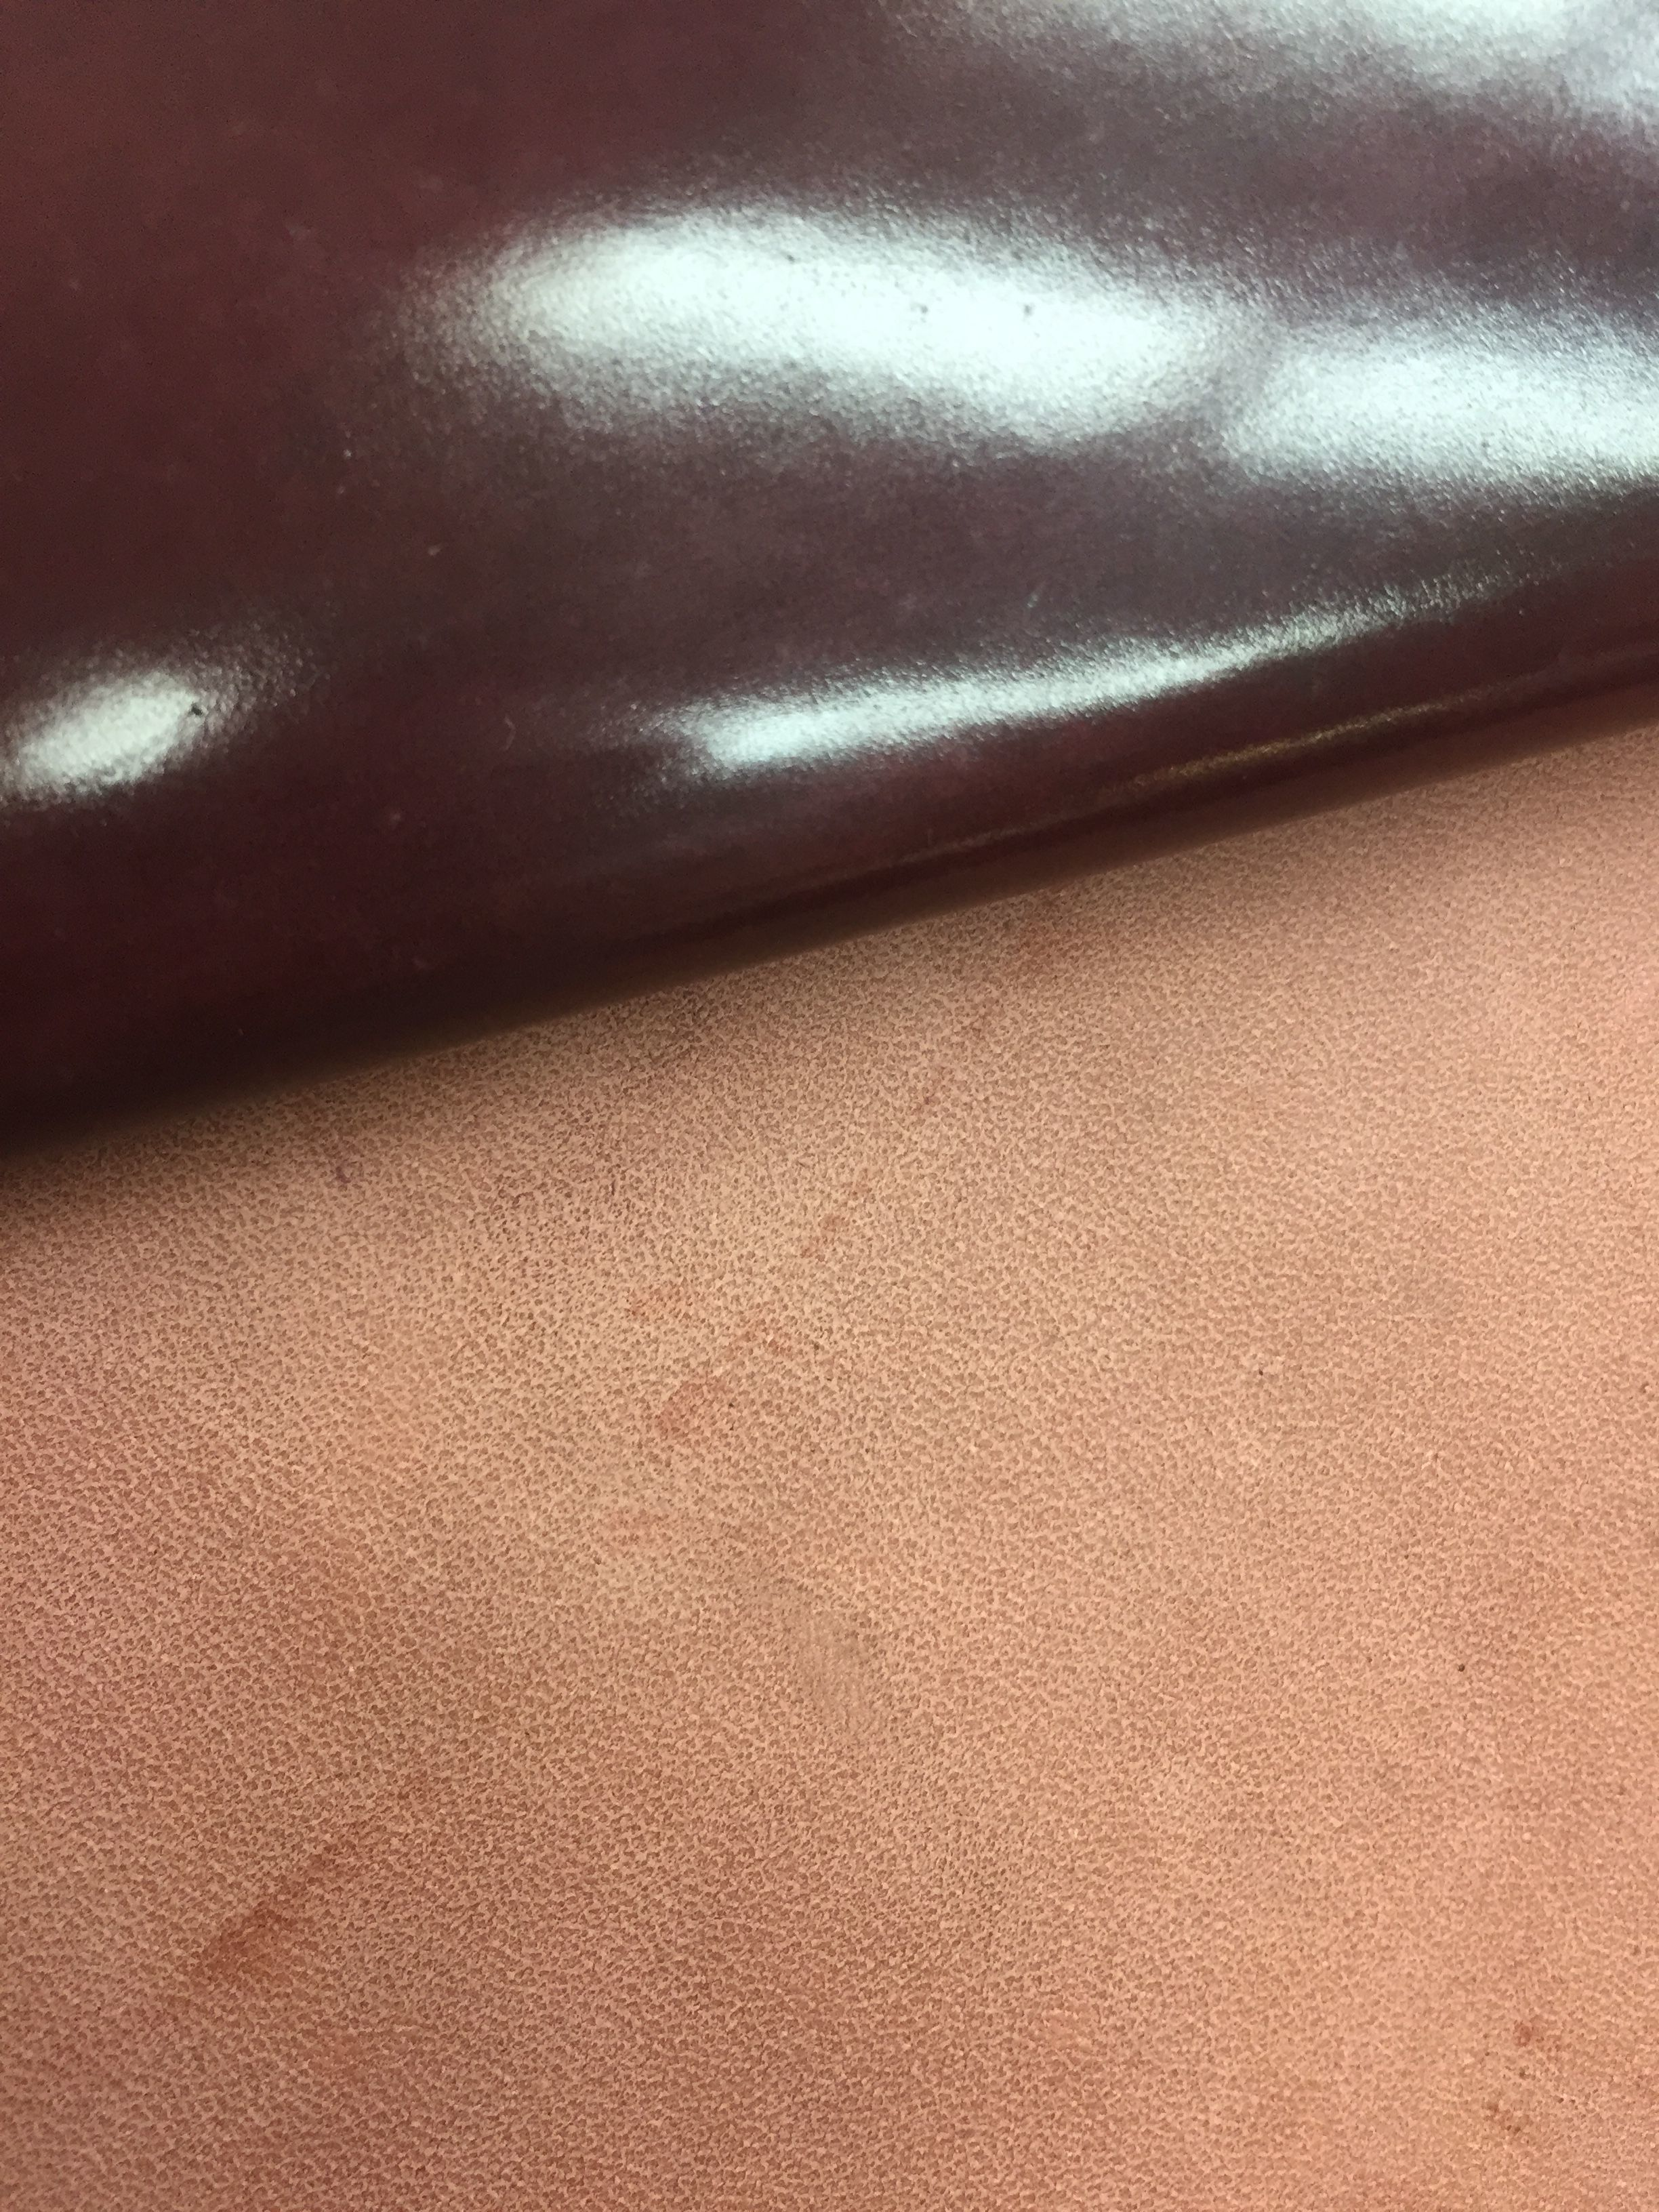 NHorween's photos in Leather wrinkles and its qualities